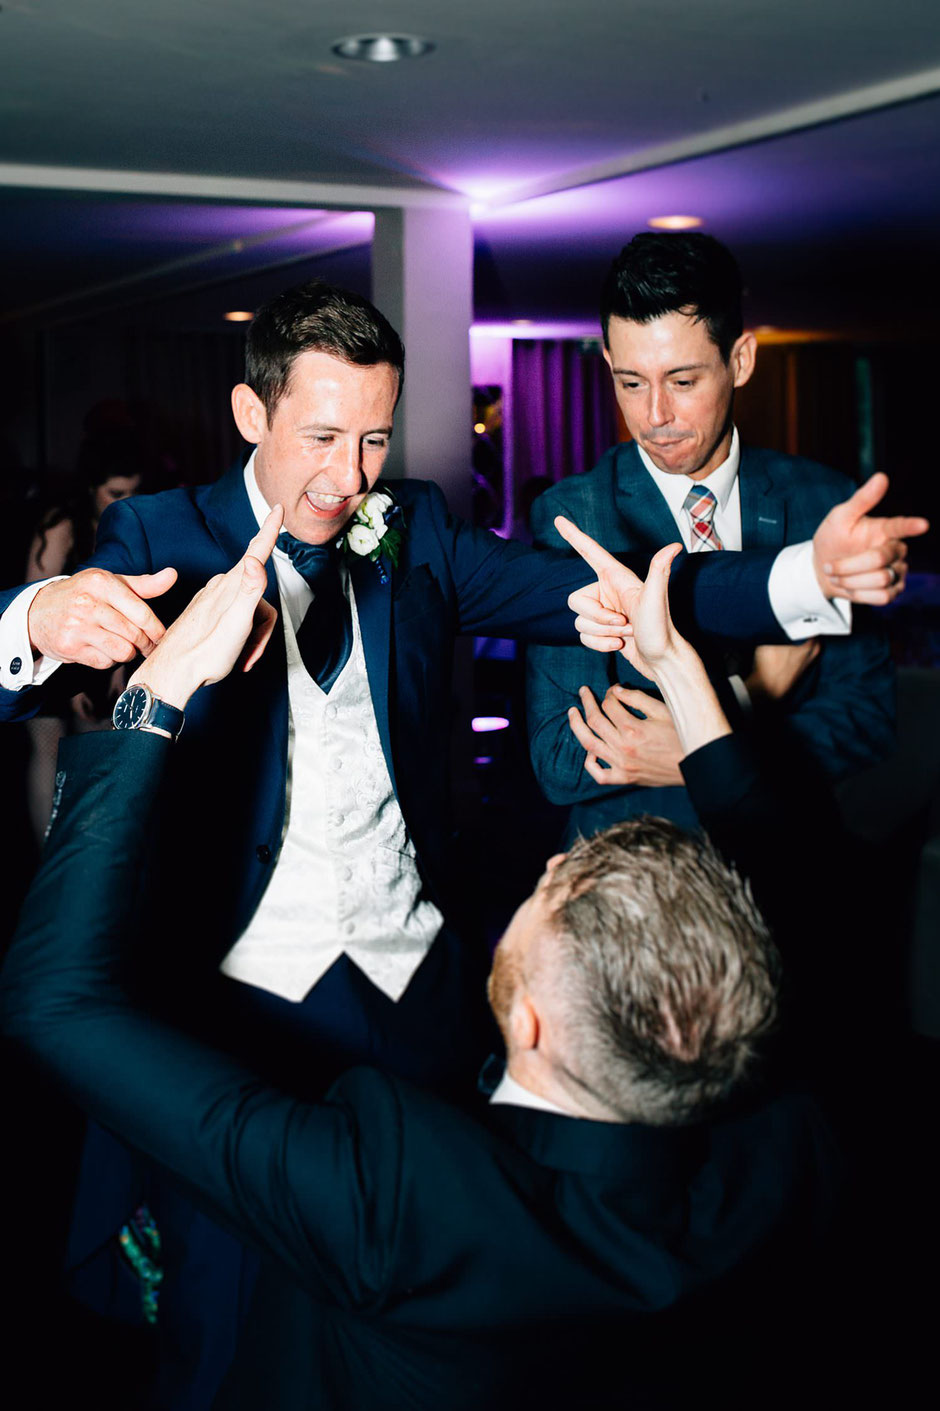 a groom and his friend laughing with each other on the dancefloor